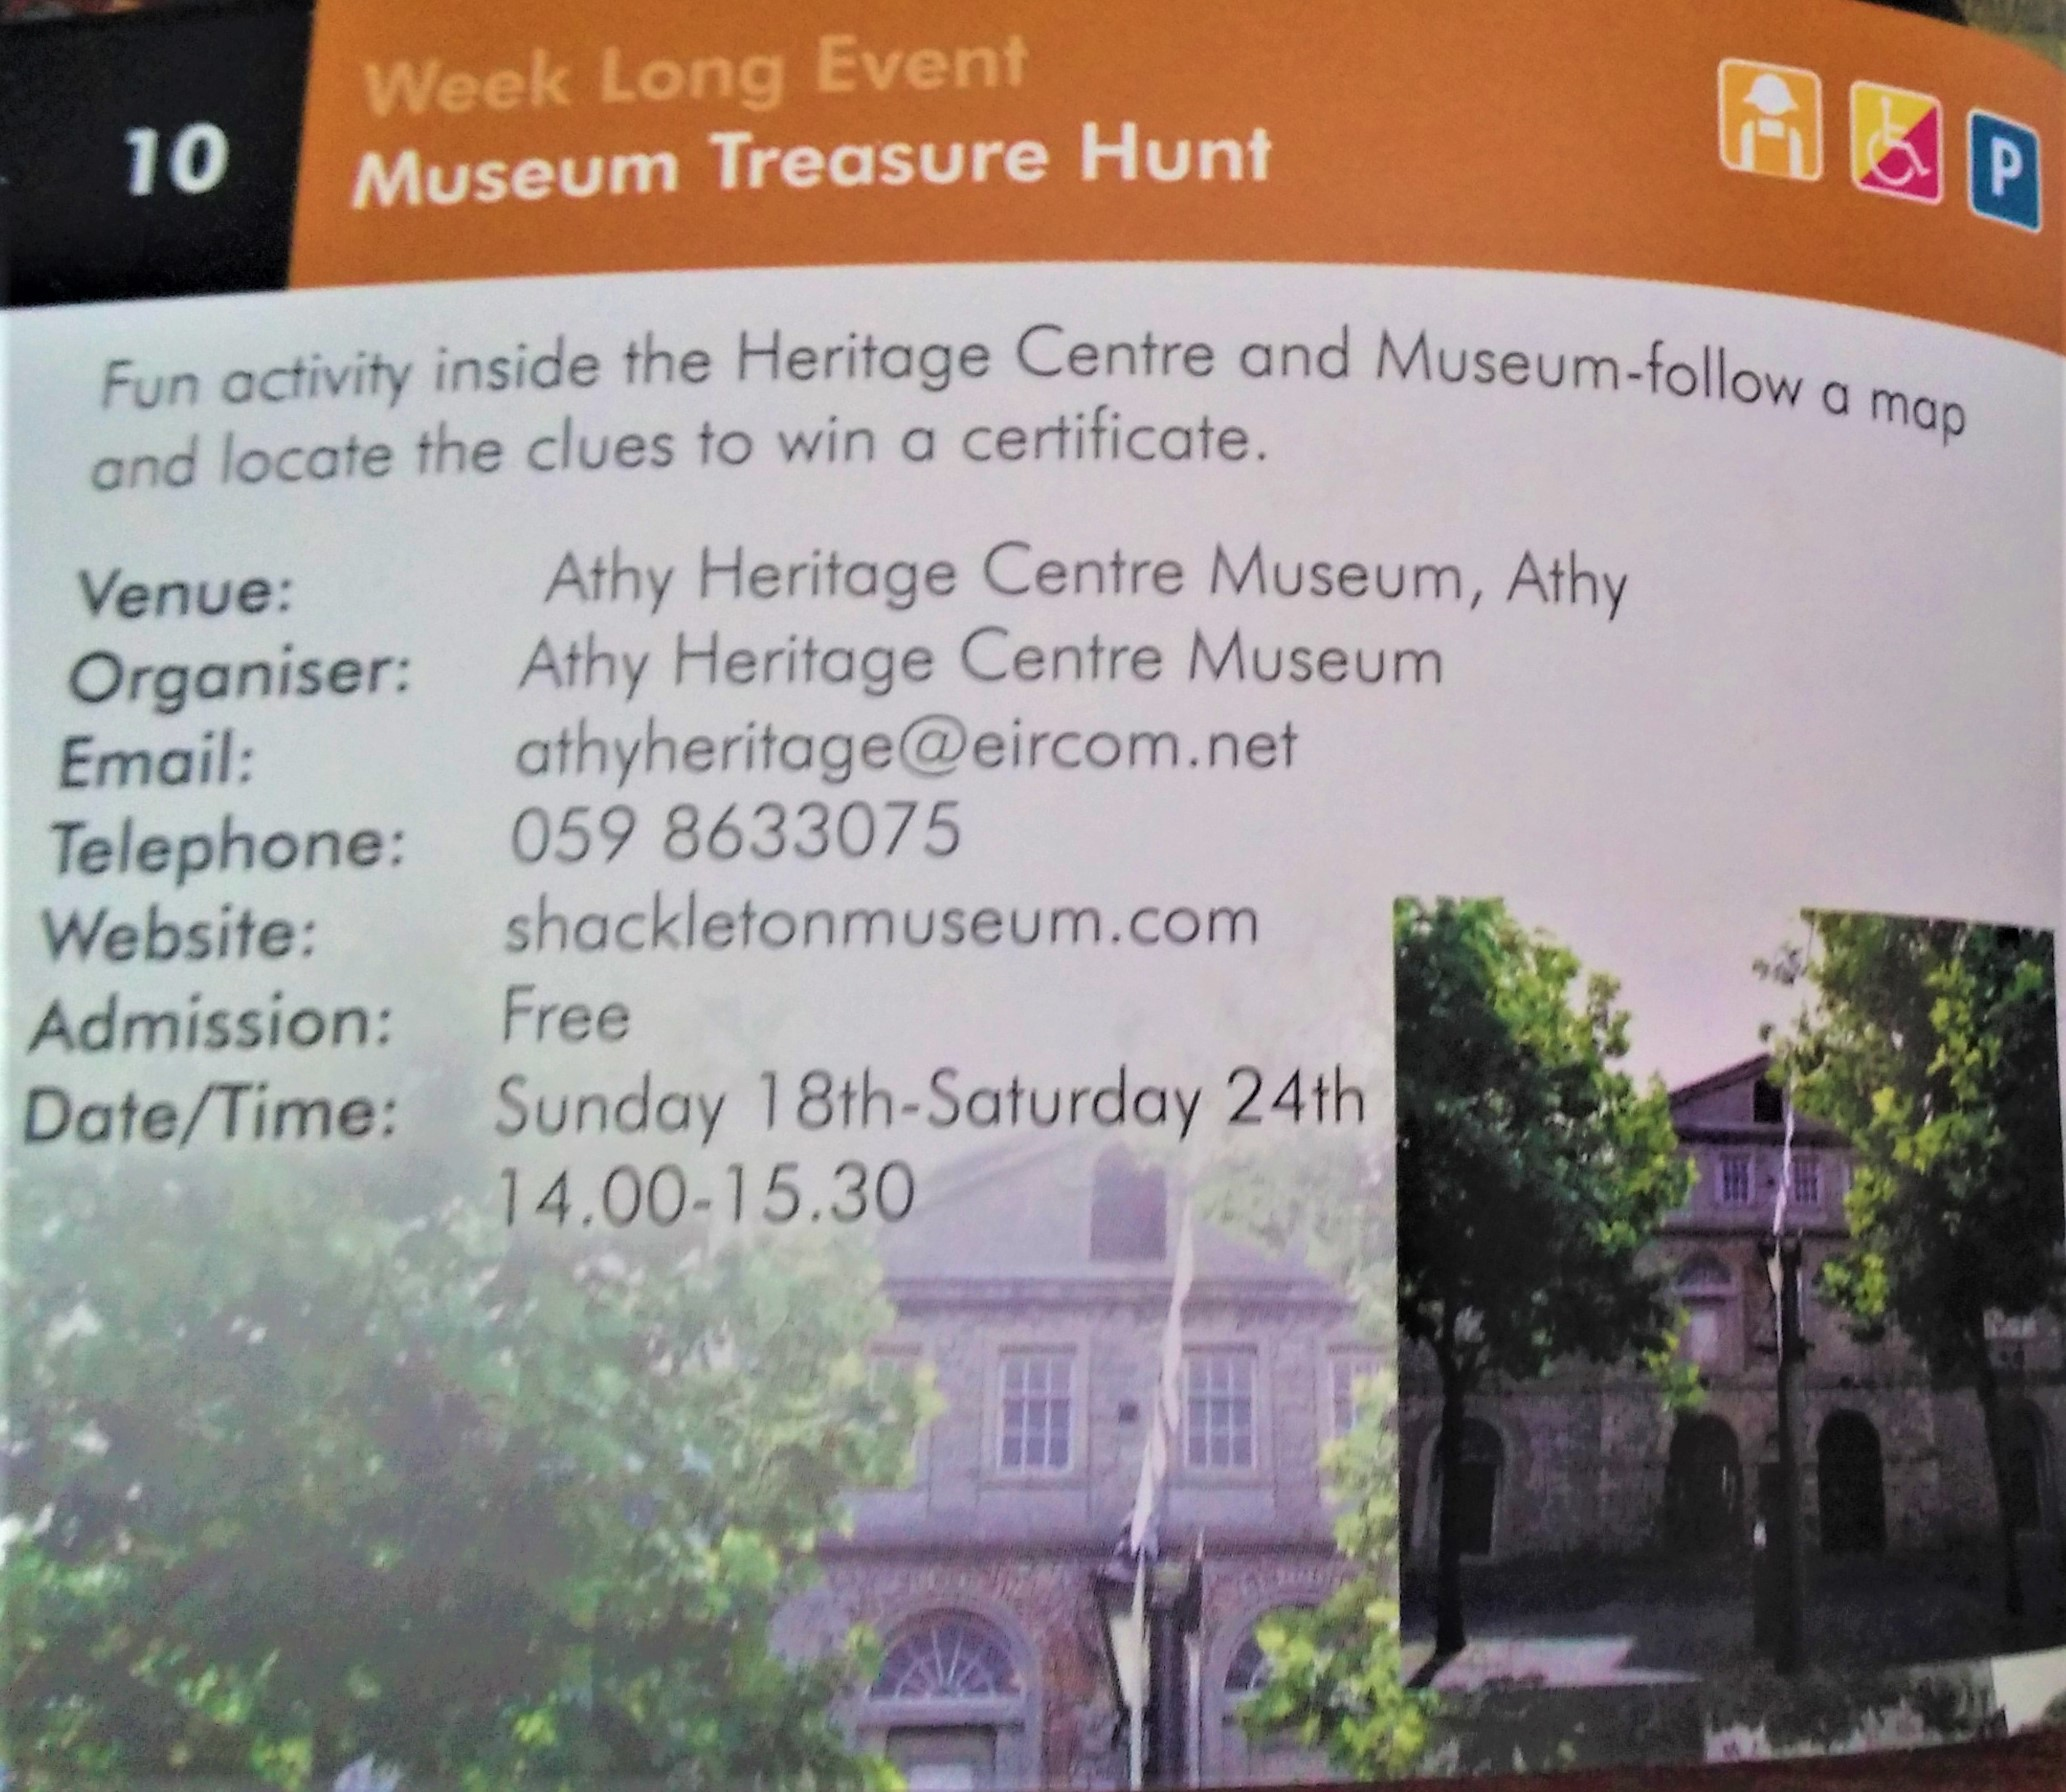 National Heritage Week 2019 17th – 25th August : Museum